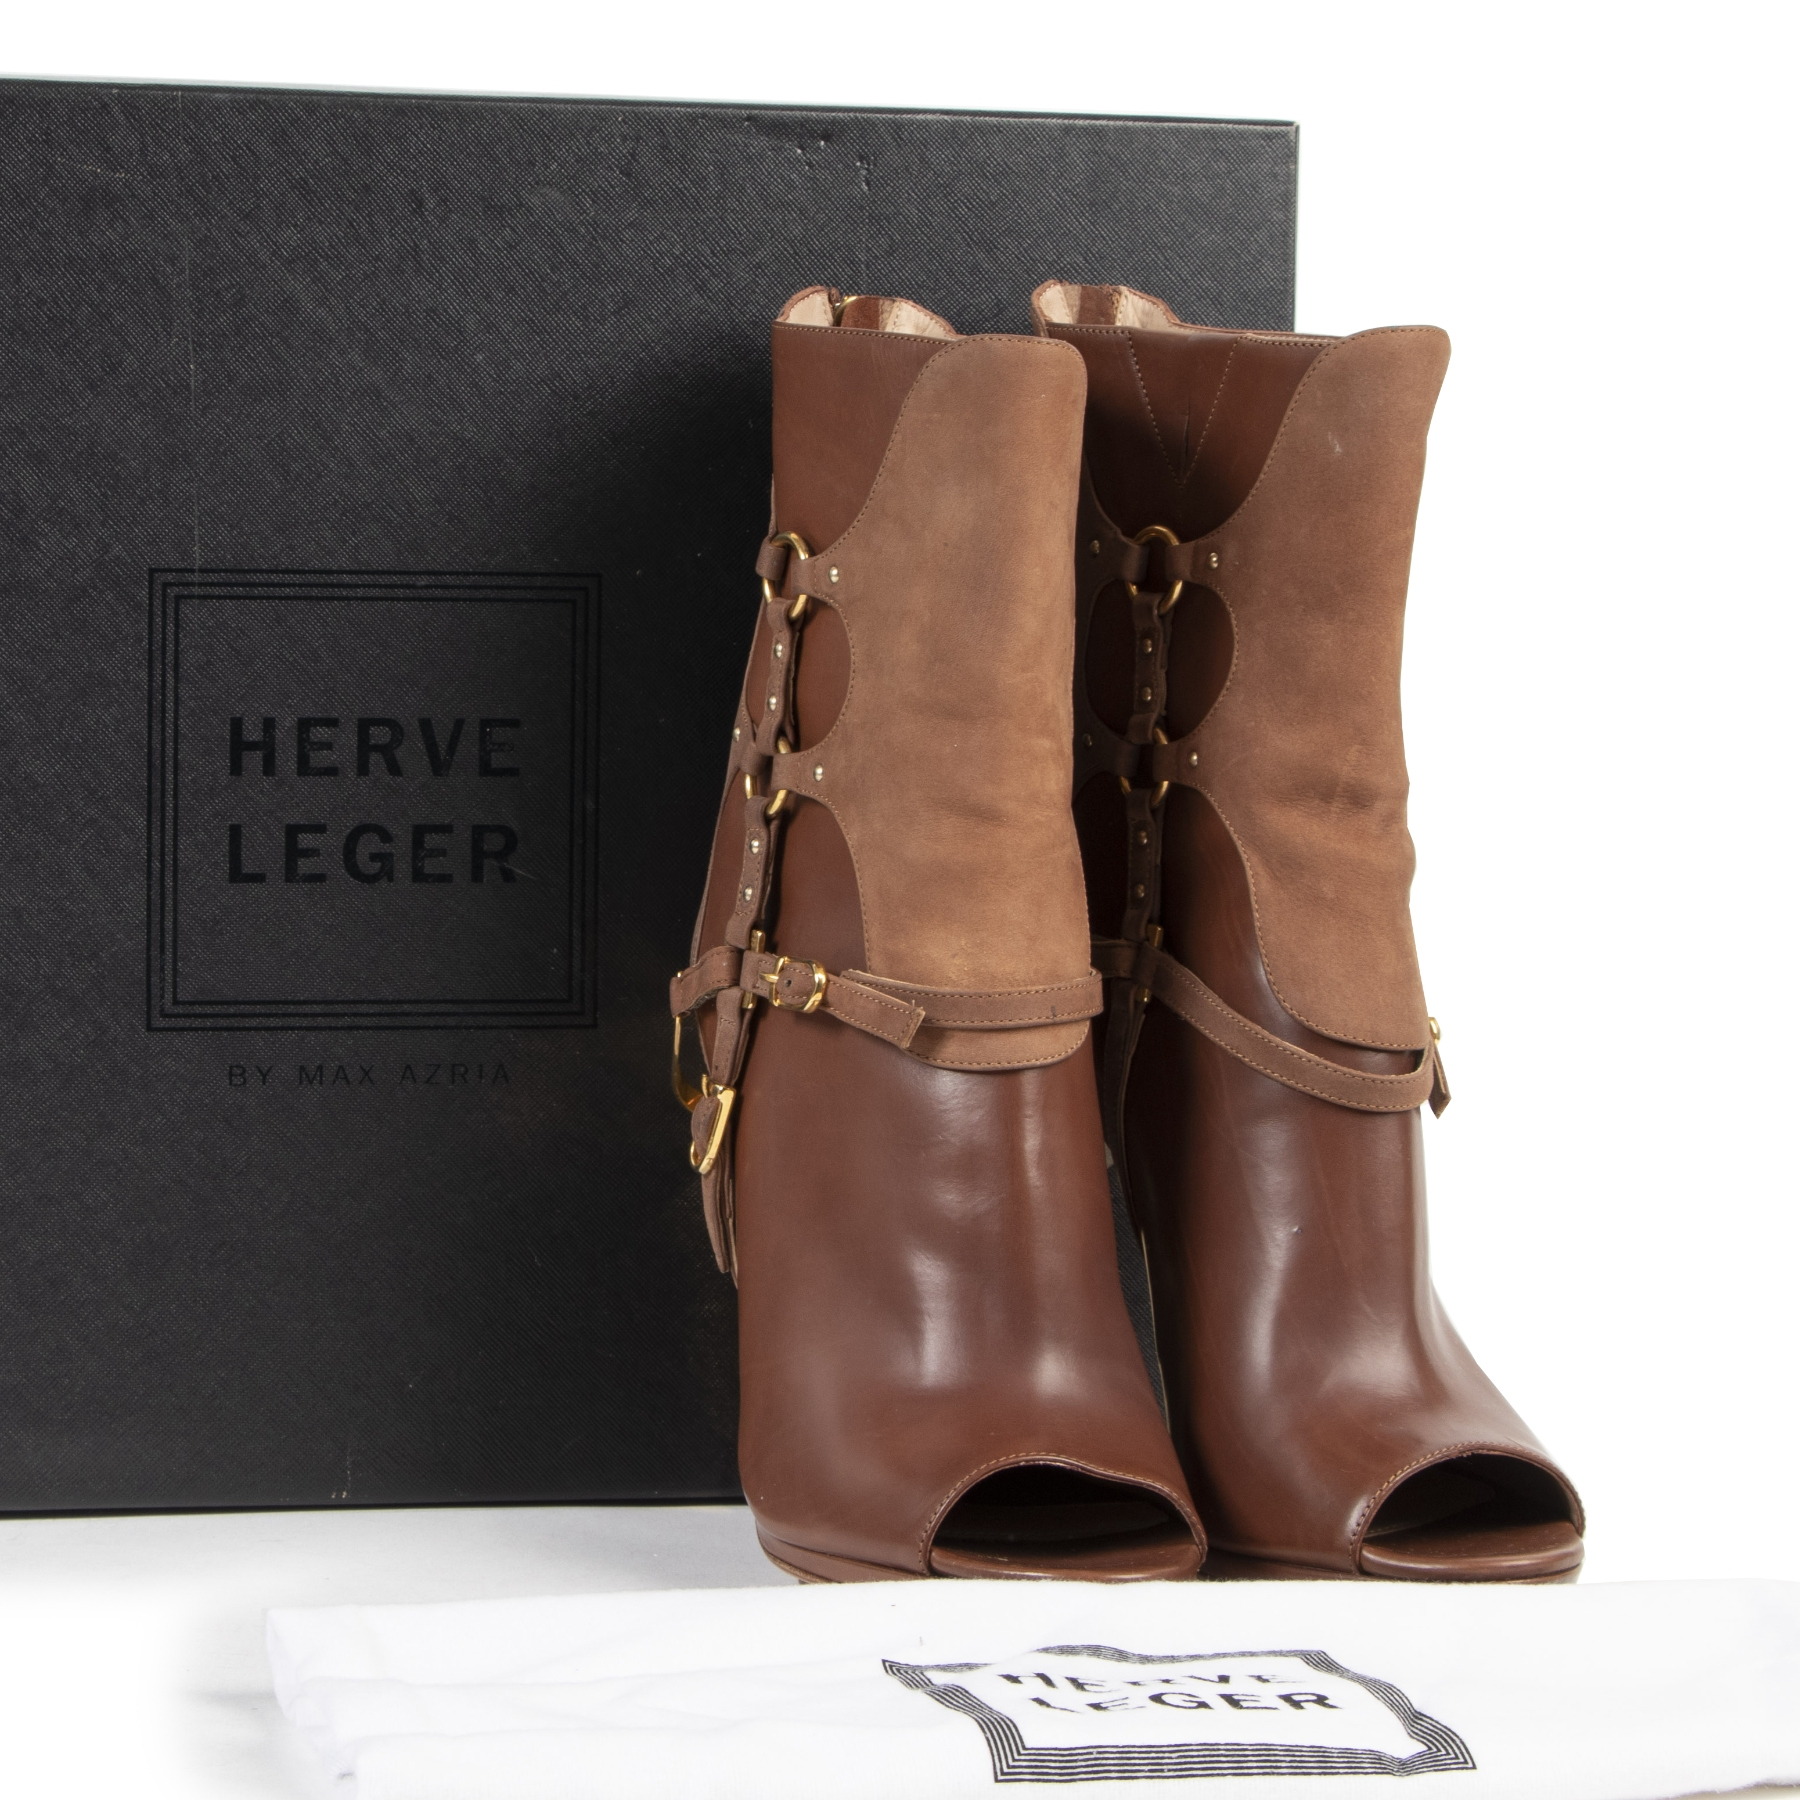 We buy and sell your Herve Leger Brown Alyn Day Boots for the best price online